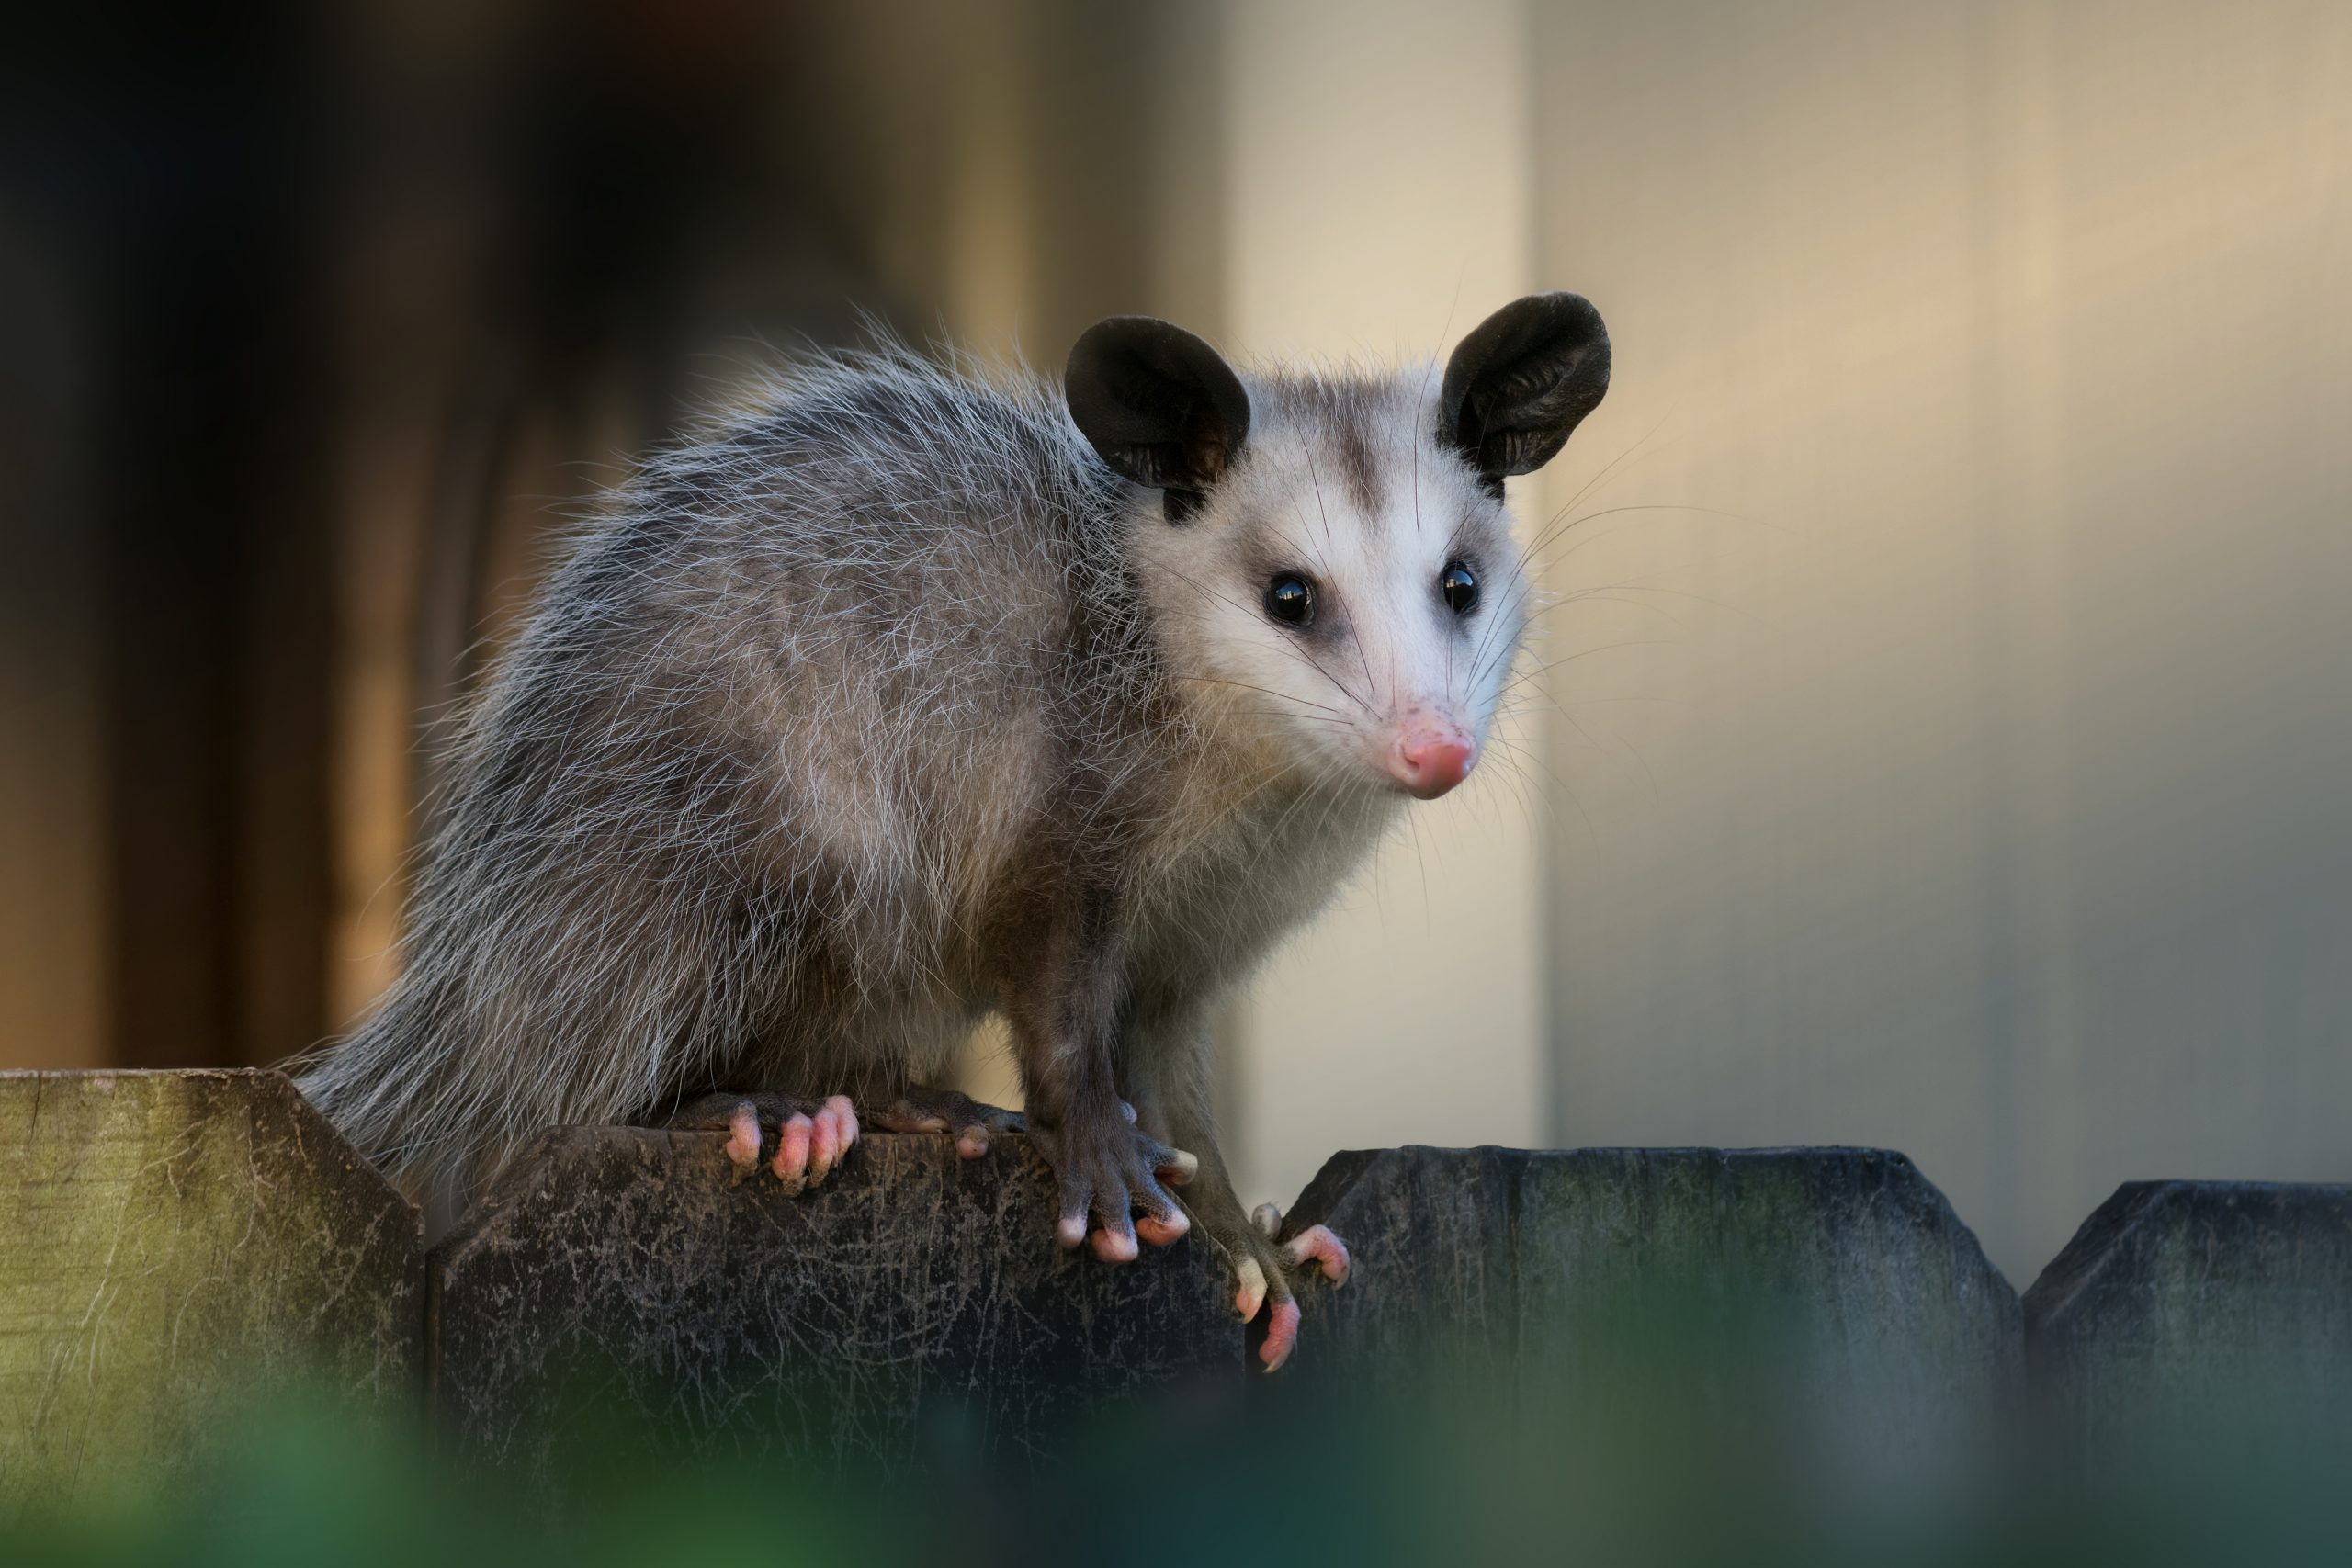 Young North American opossum (Didelphis virginiana) sits on a fence near the house.